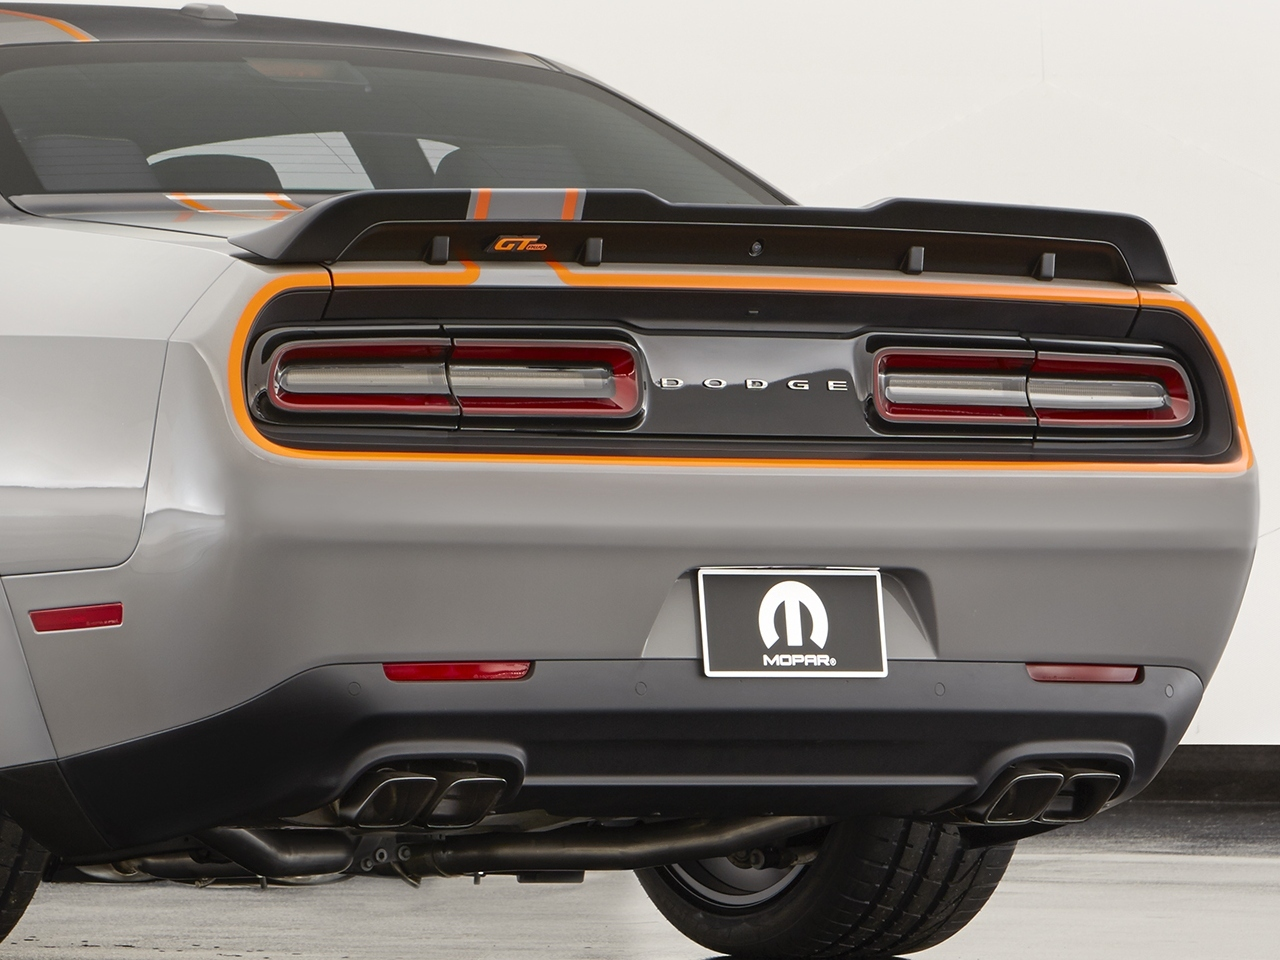 The Dodge Challenger GT AWD Concept is among the Mopar-modified